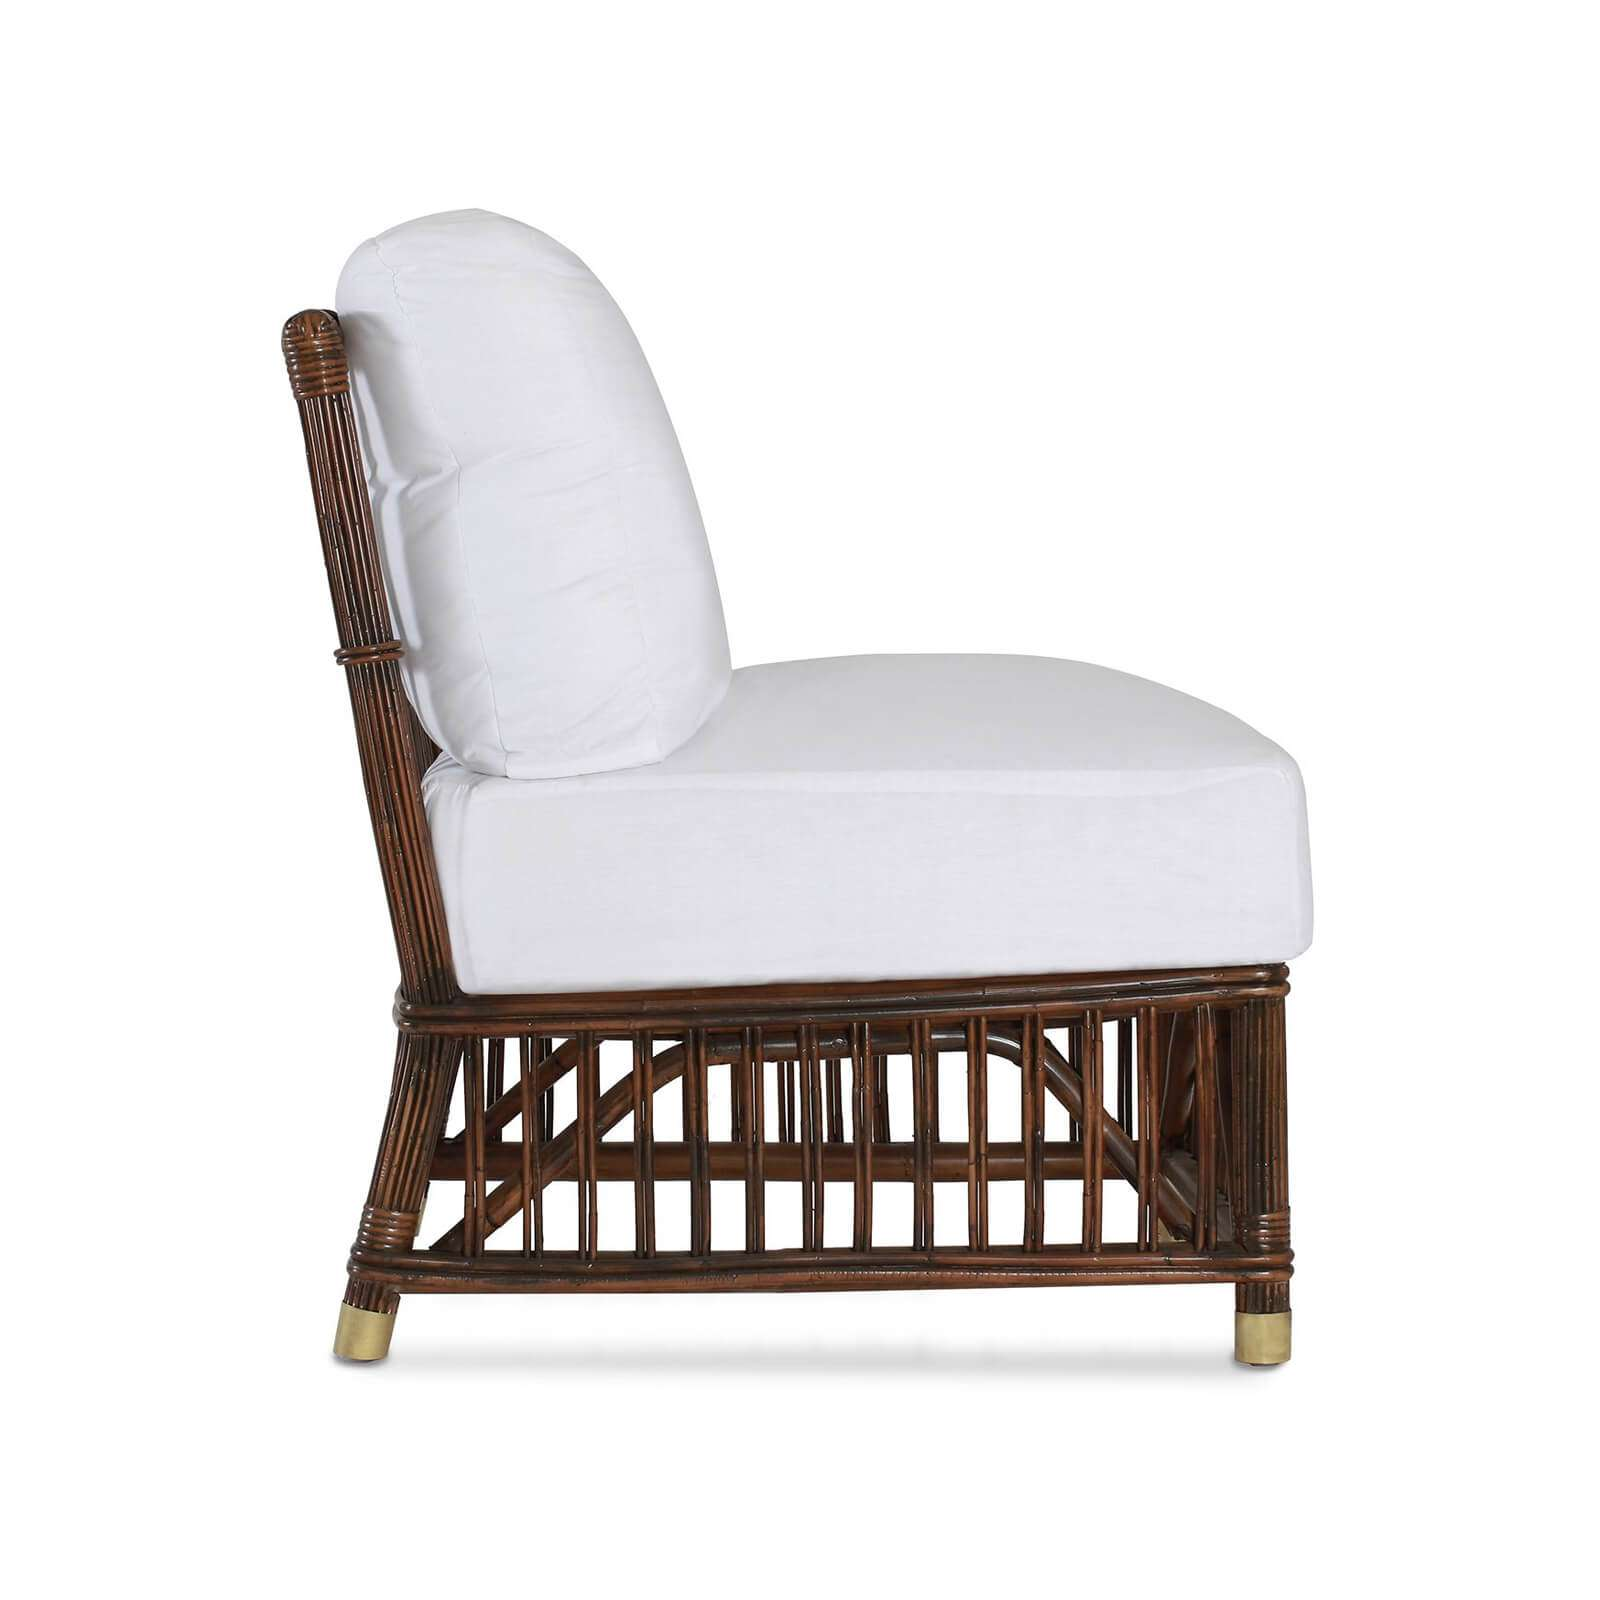 BUNGALOW SLIPPER CHAIR 03 - STUART MEMBERY HOME COLLECTION